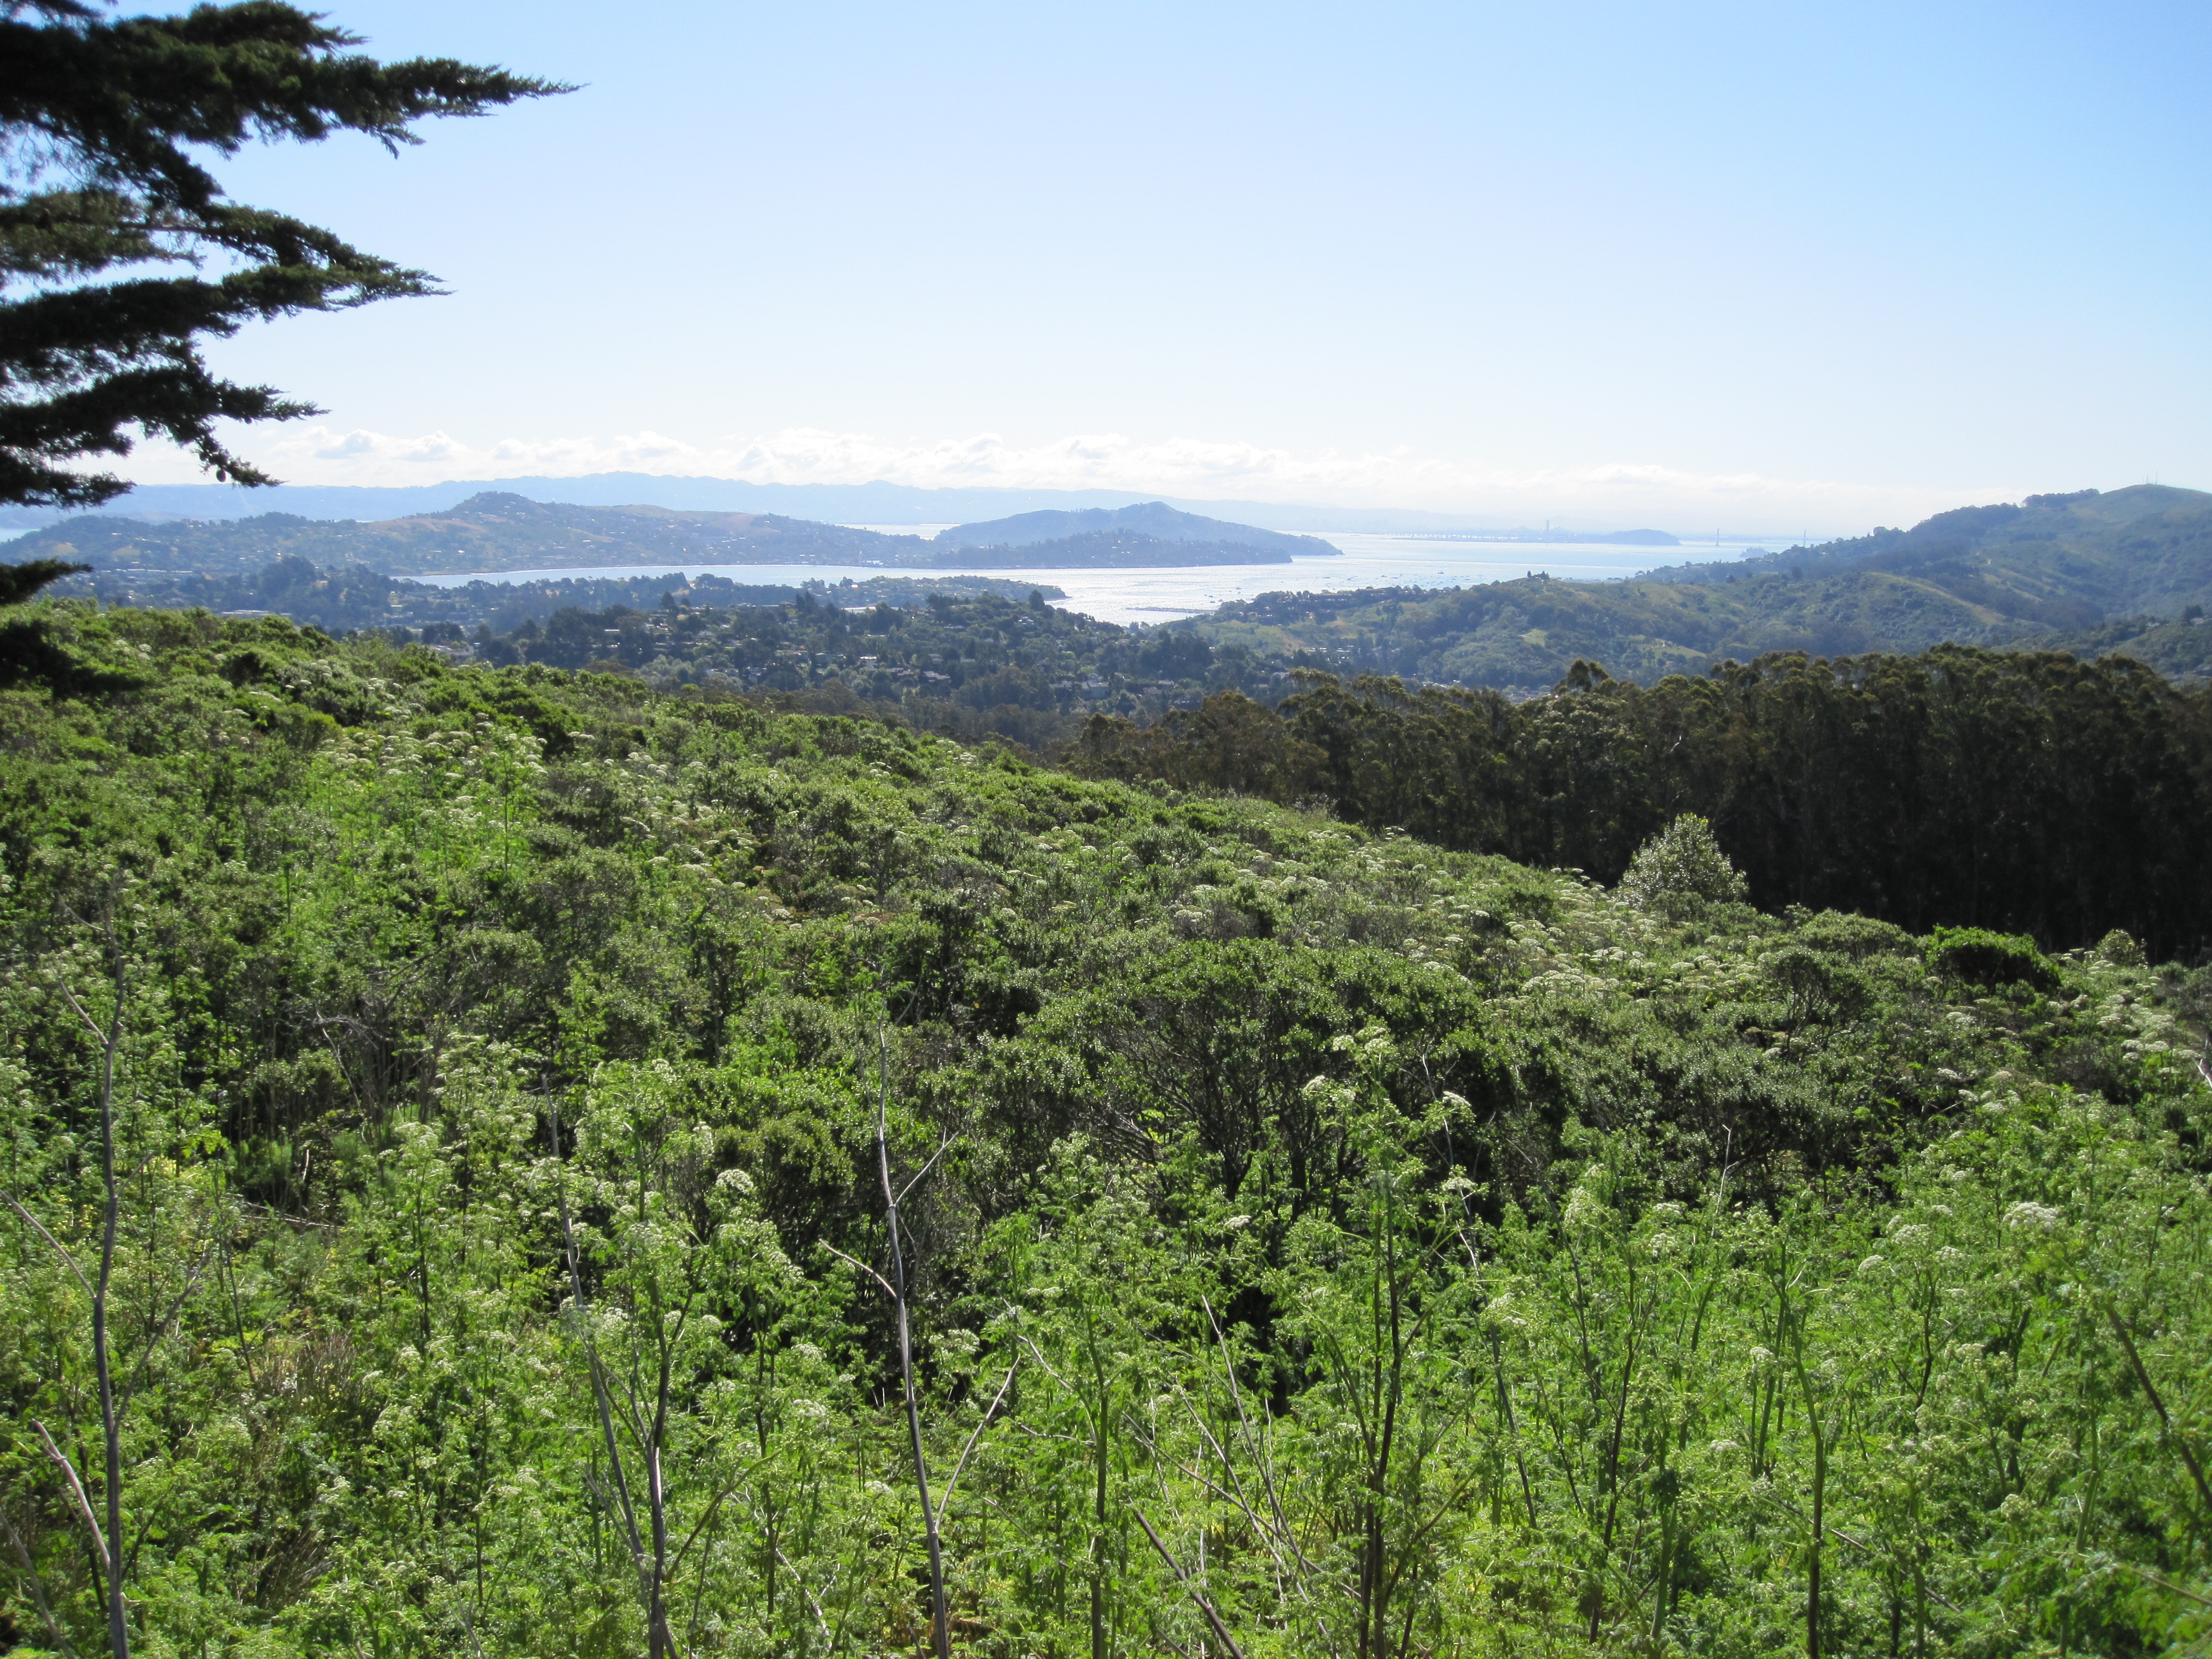 San Francisco Bay from Muir Woods